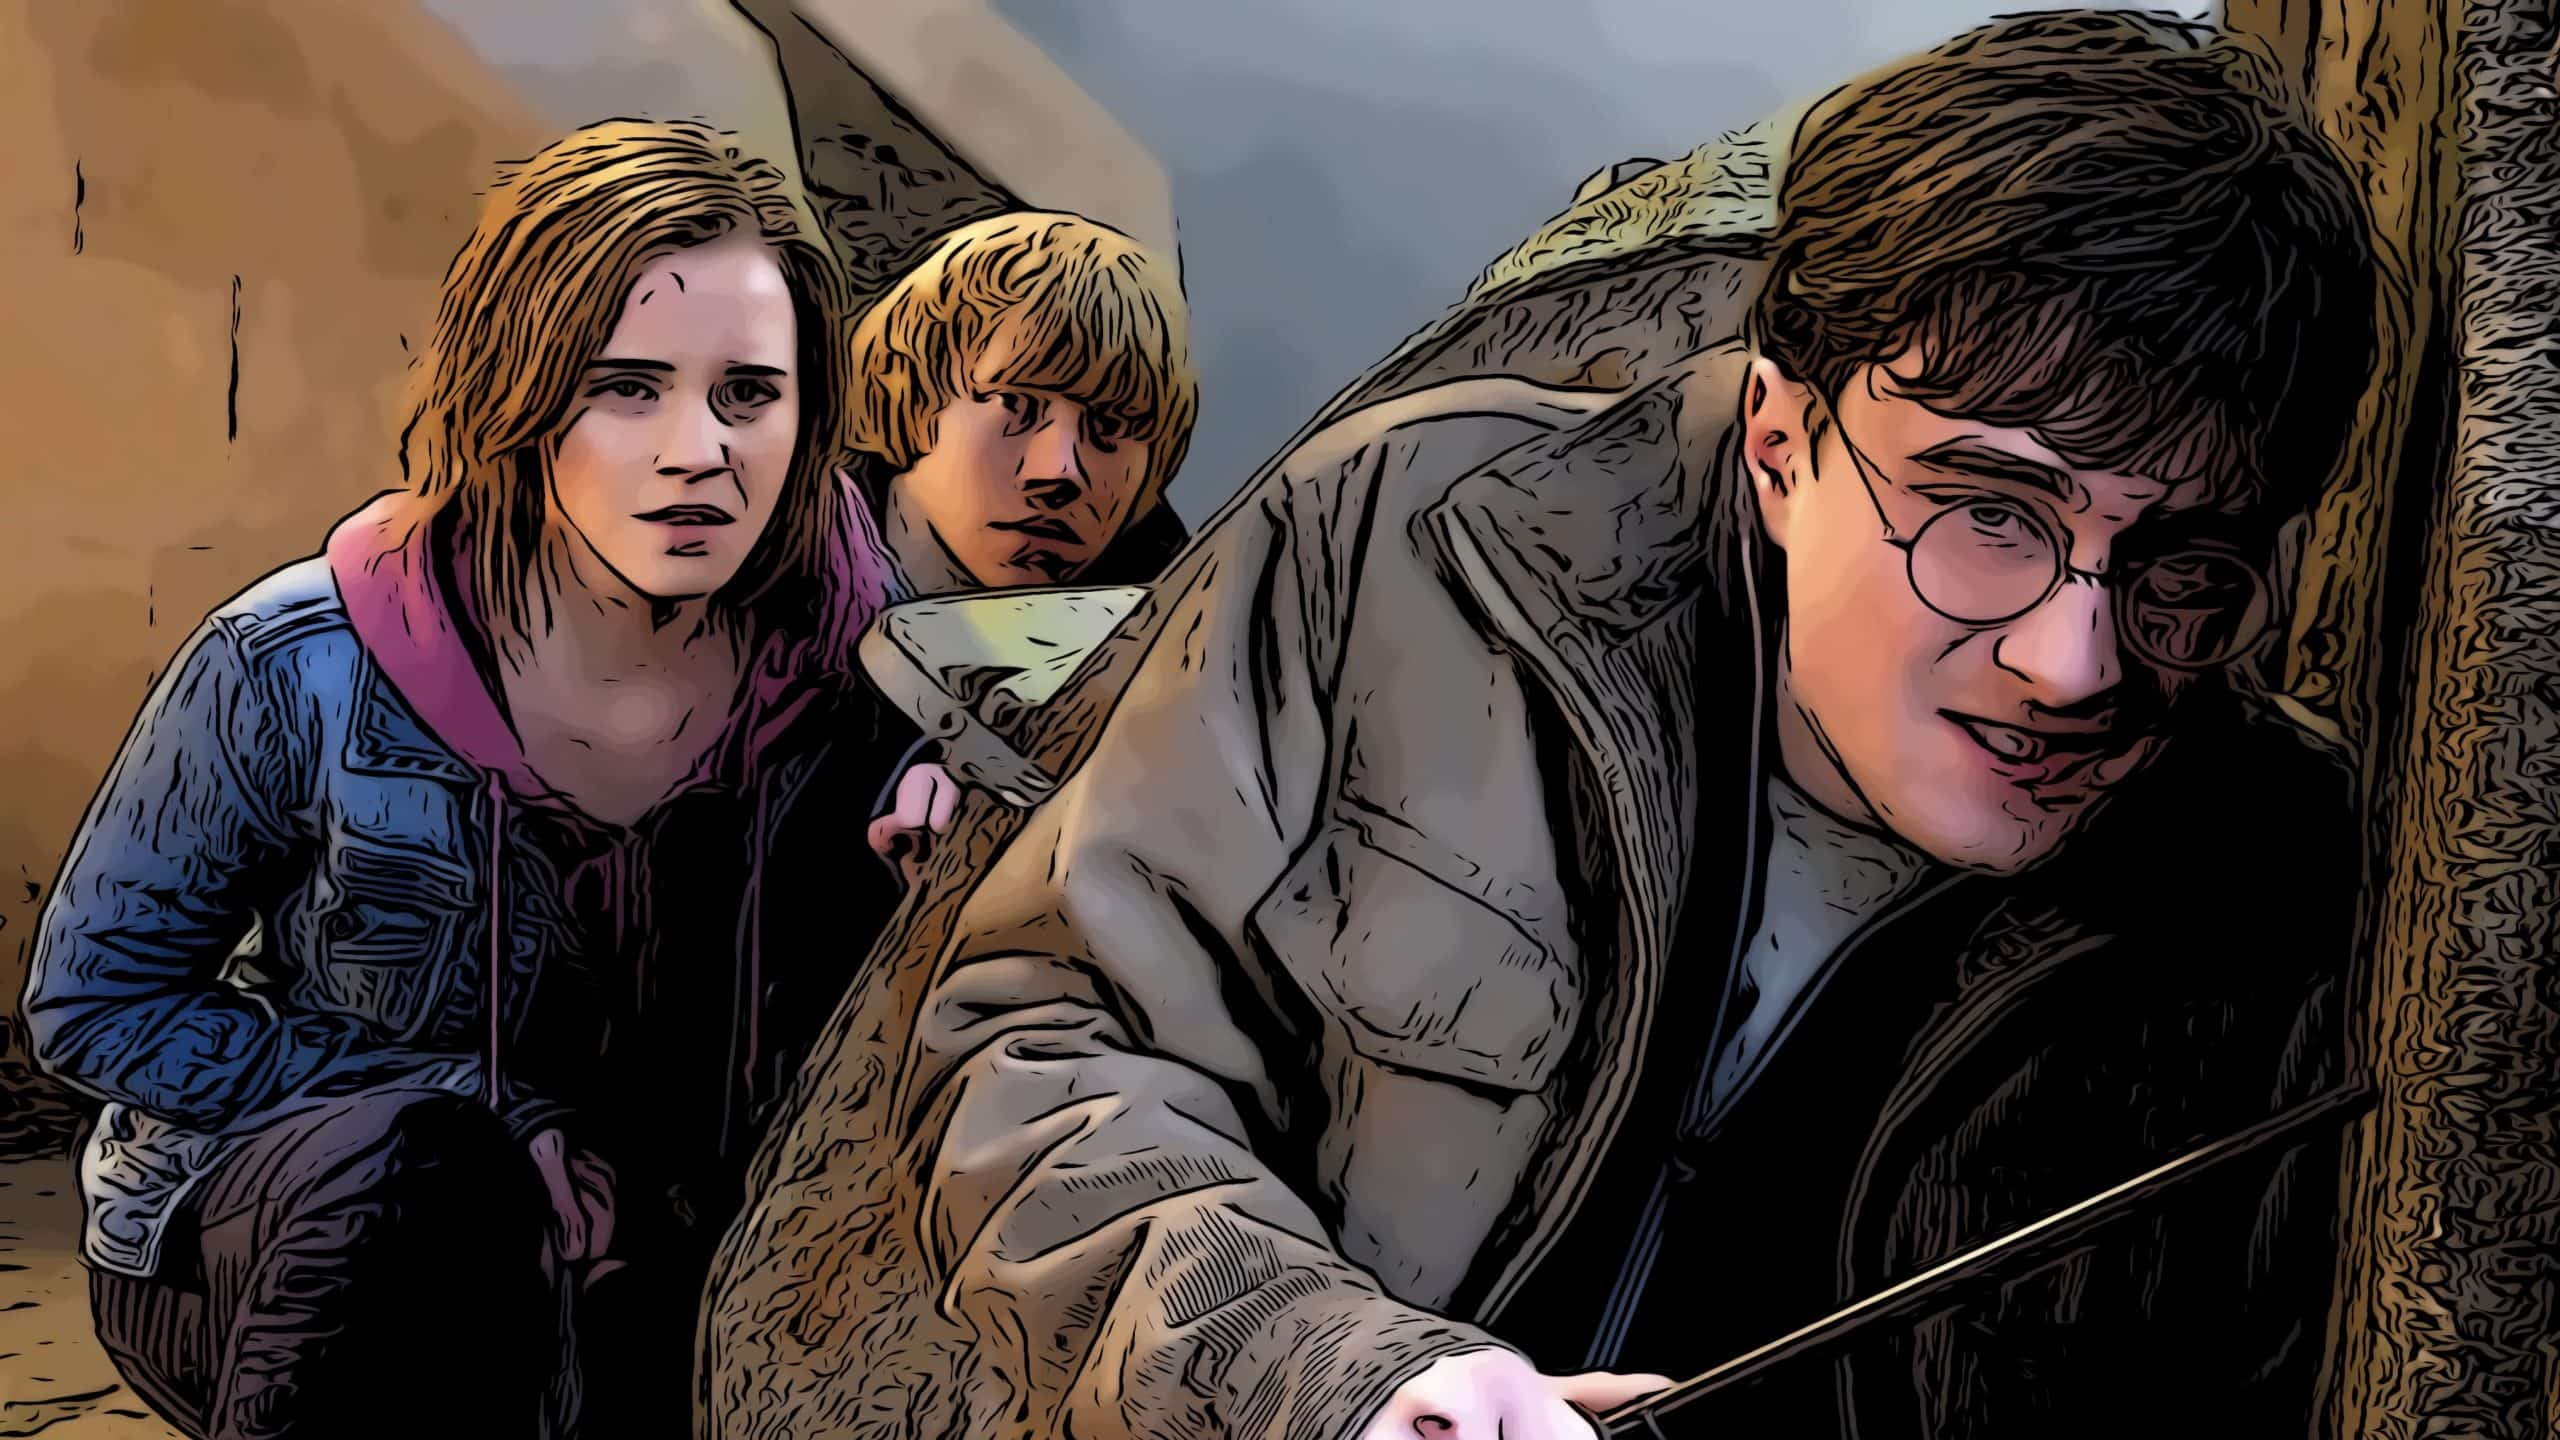 Scene from Deathly Hallows part 2 for Harry Potter movies in order post.